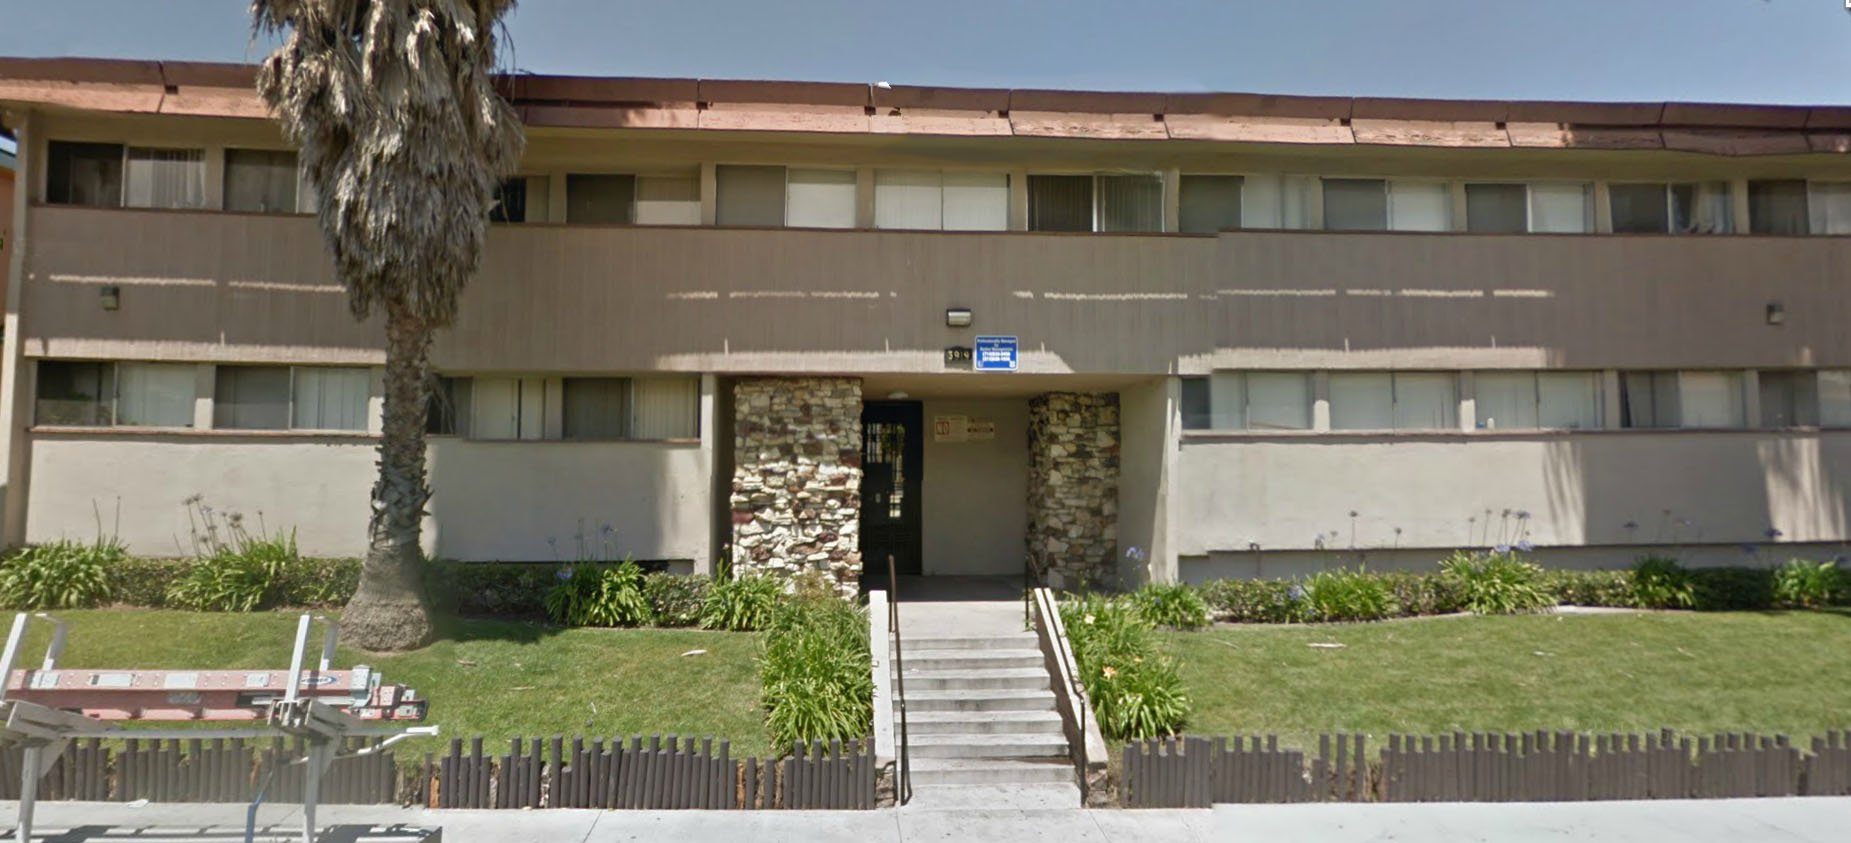 Affordable Housing   911 2 BR   2 BA  Check Availability   Baldwin Village    3919 Nicolet. Affordable Housing in LOS ANGELES  CA   RentalHousingDeals com